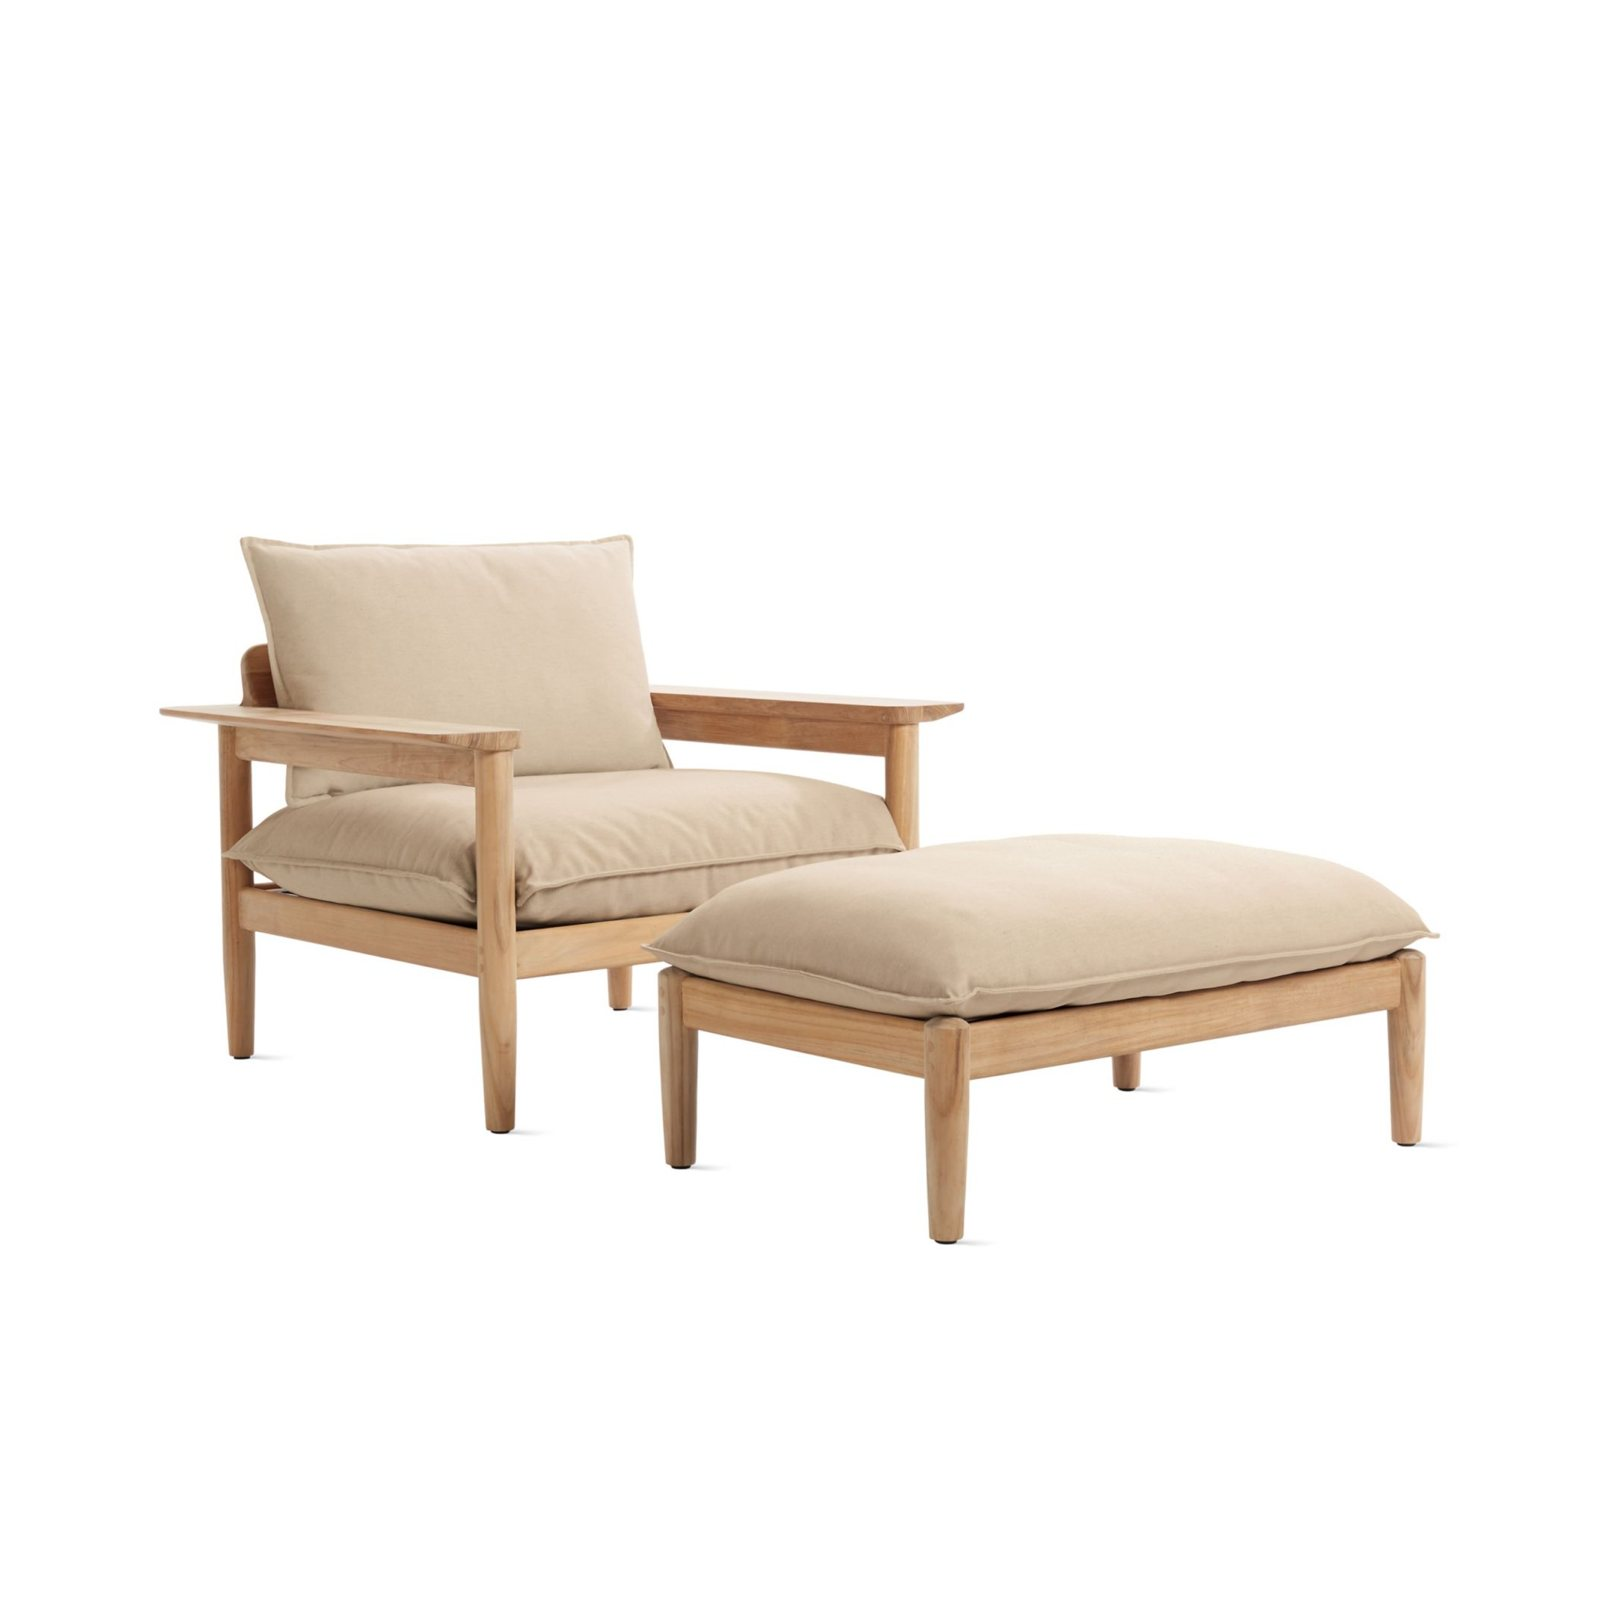 Terassi Lounge Chair And Ottoman, Papyrus.